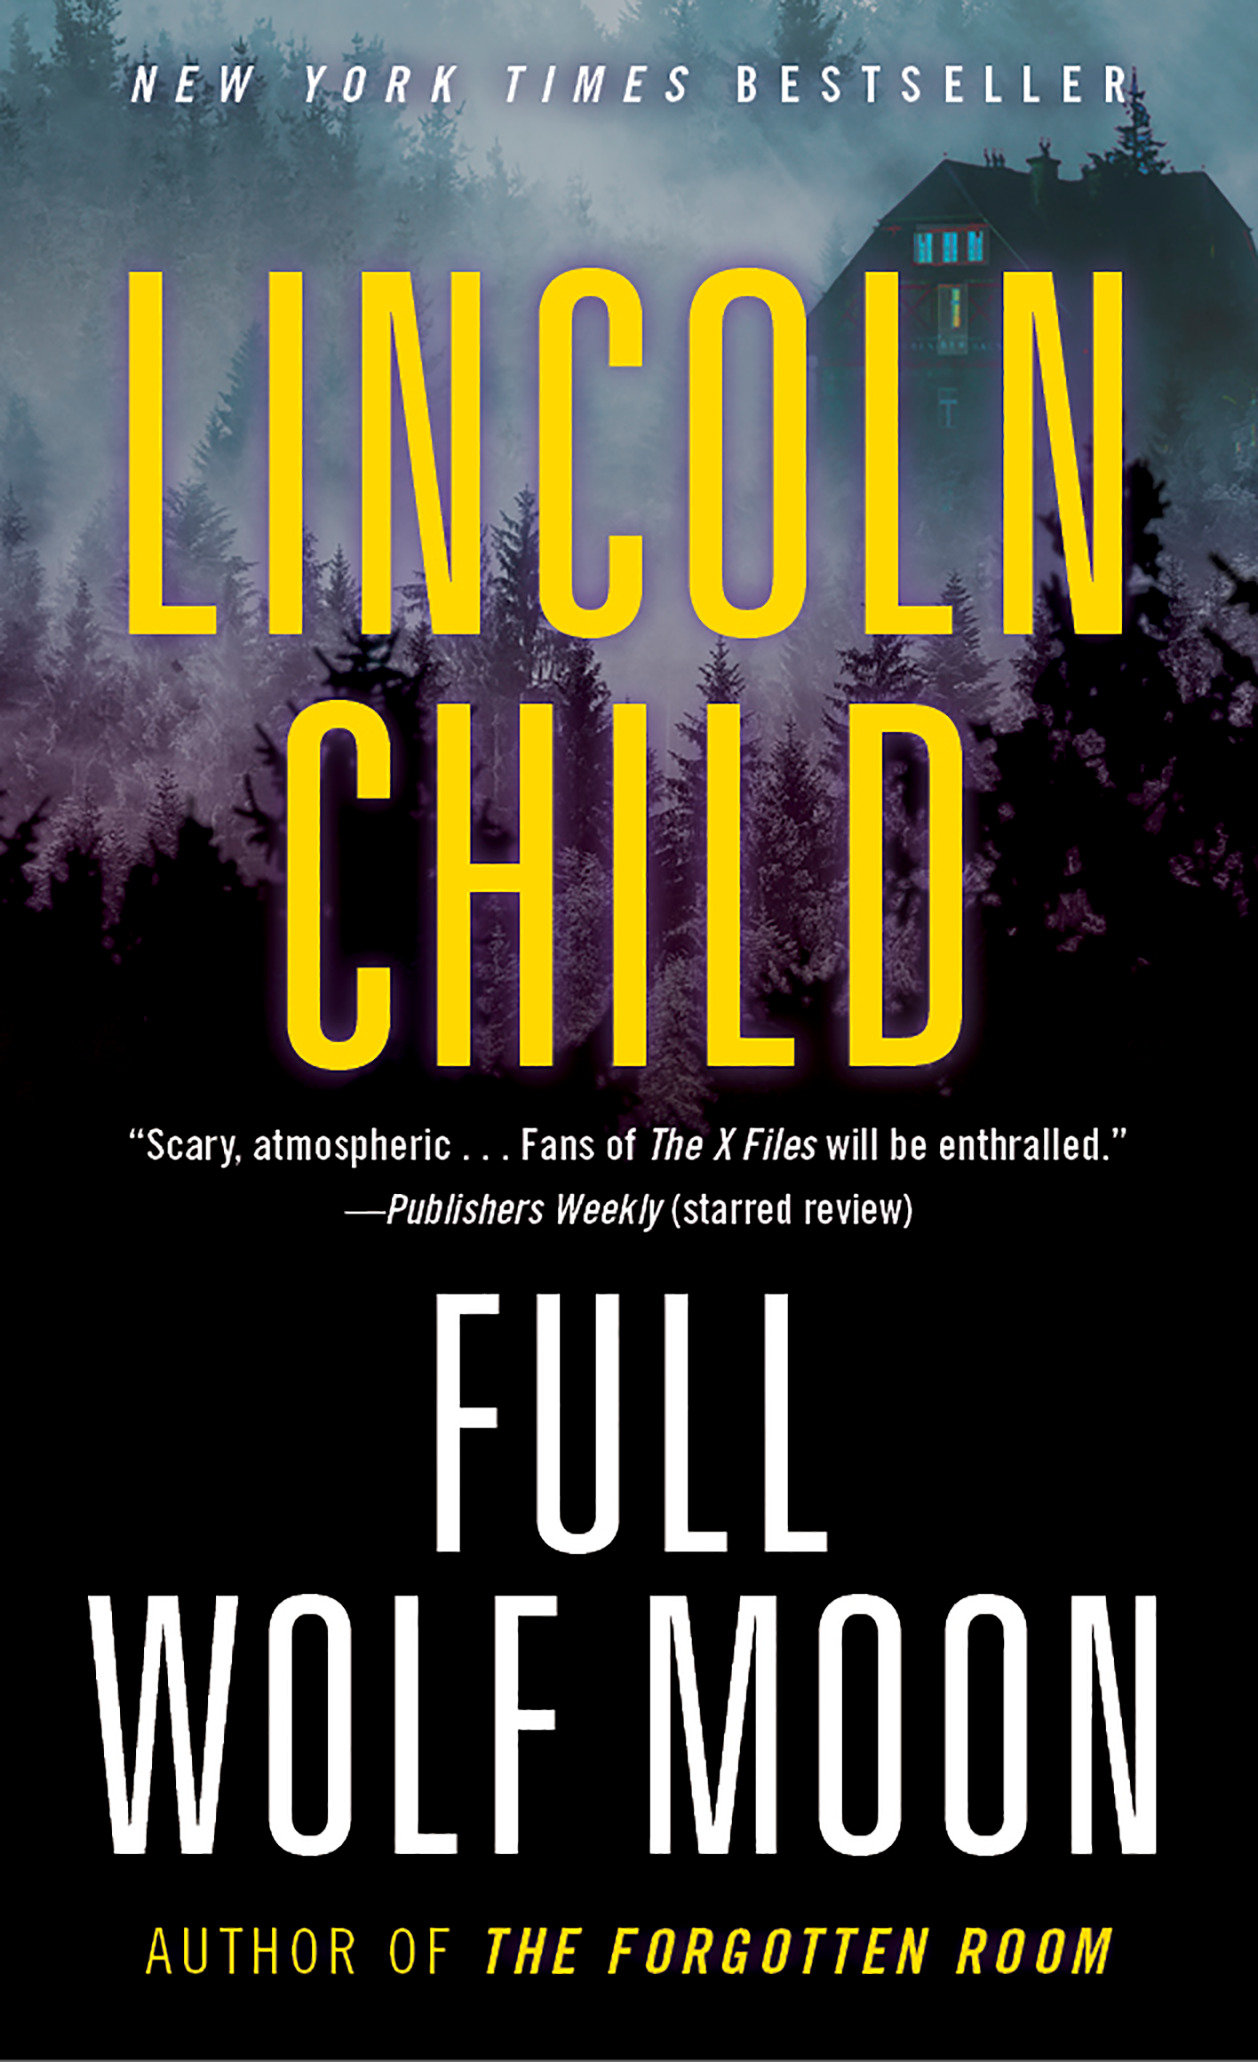 Full Wolf Moon A Novel